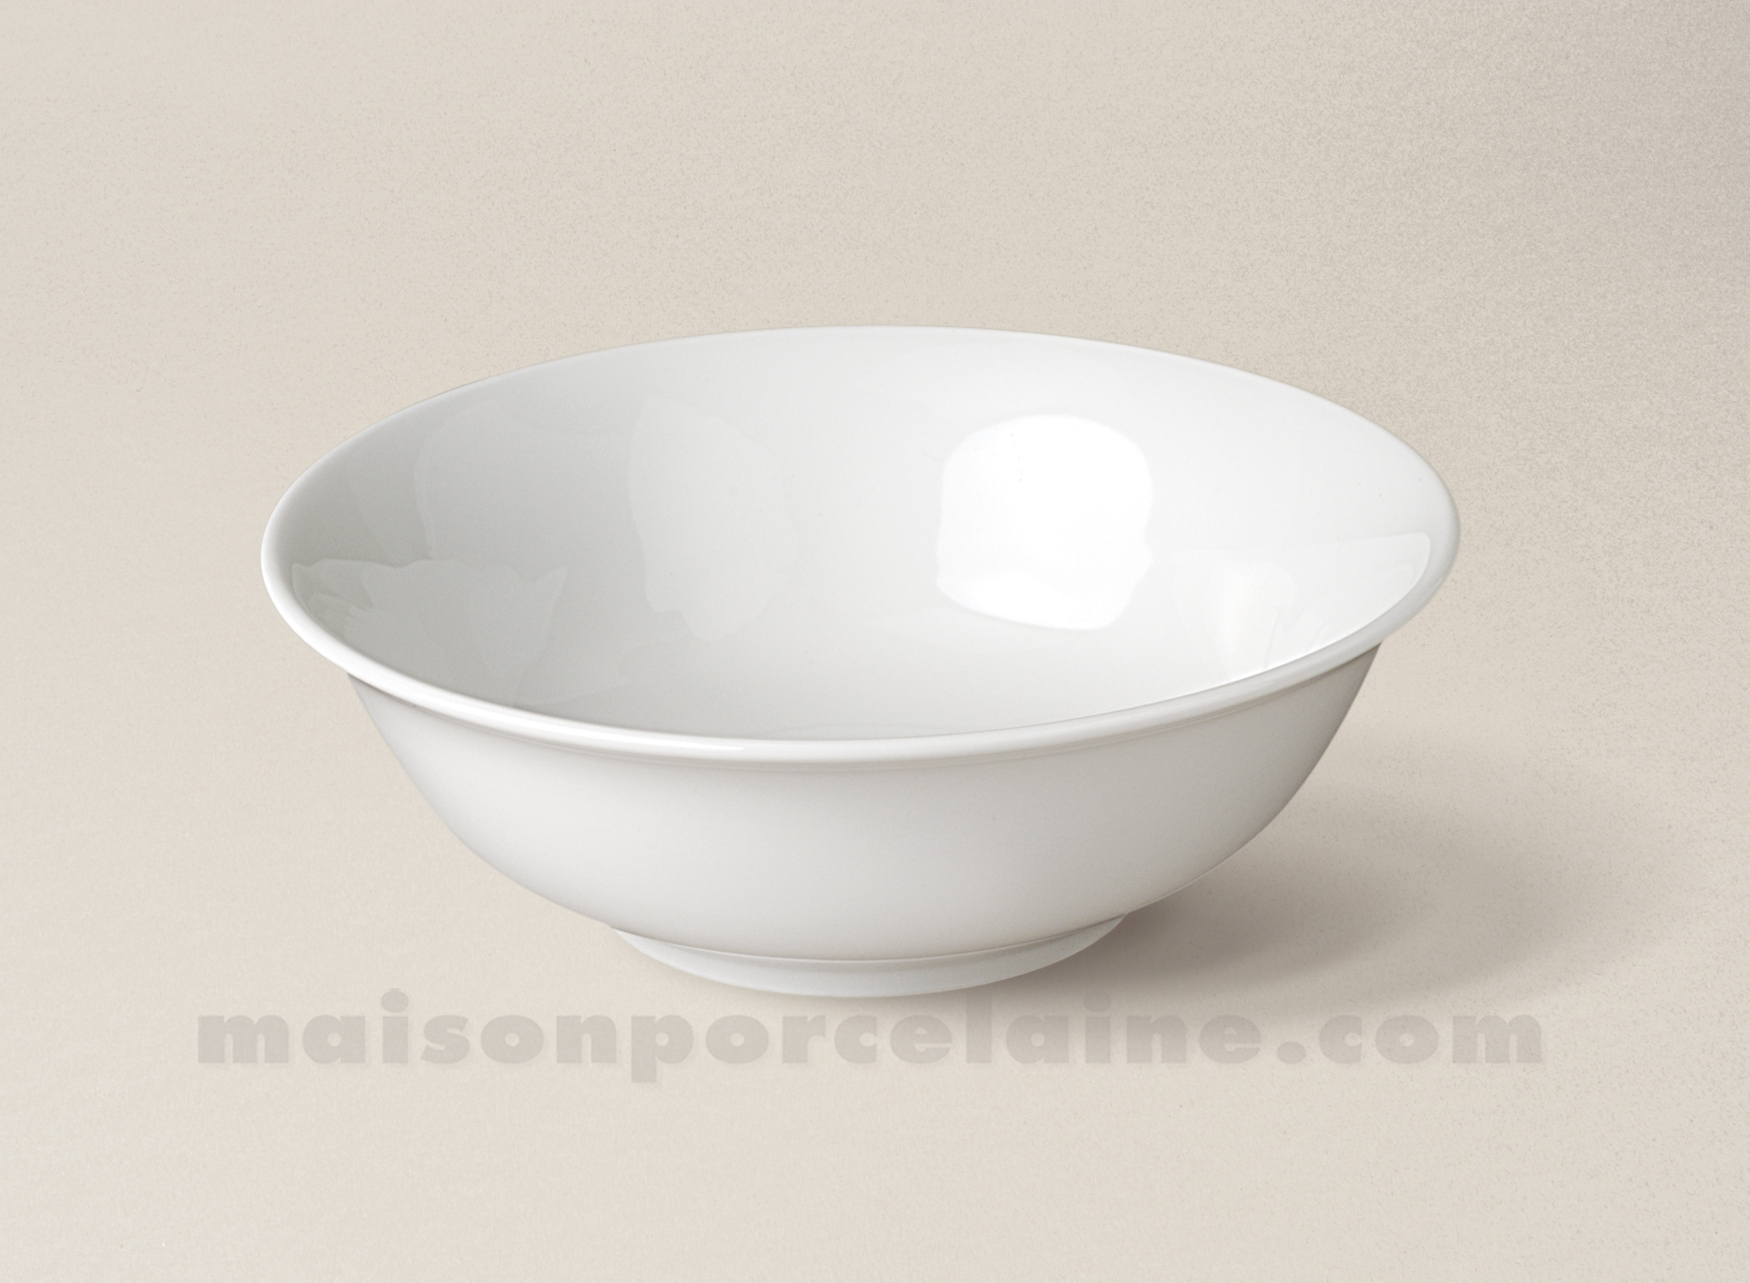 Coupelle porcelaine blanche conique sologne 13x4 maison for Maison de la porcelaine